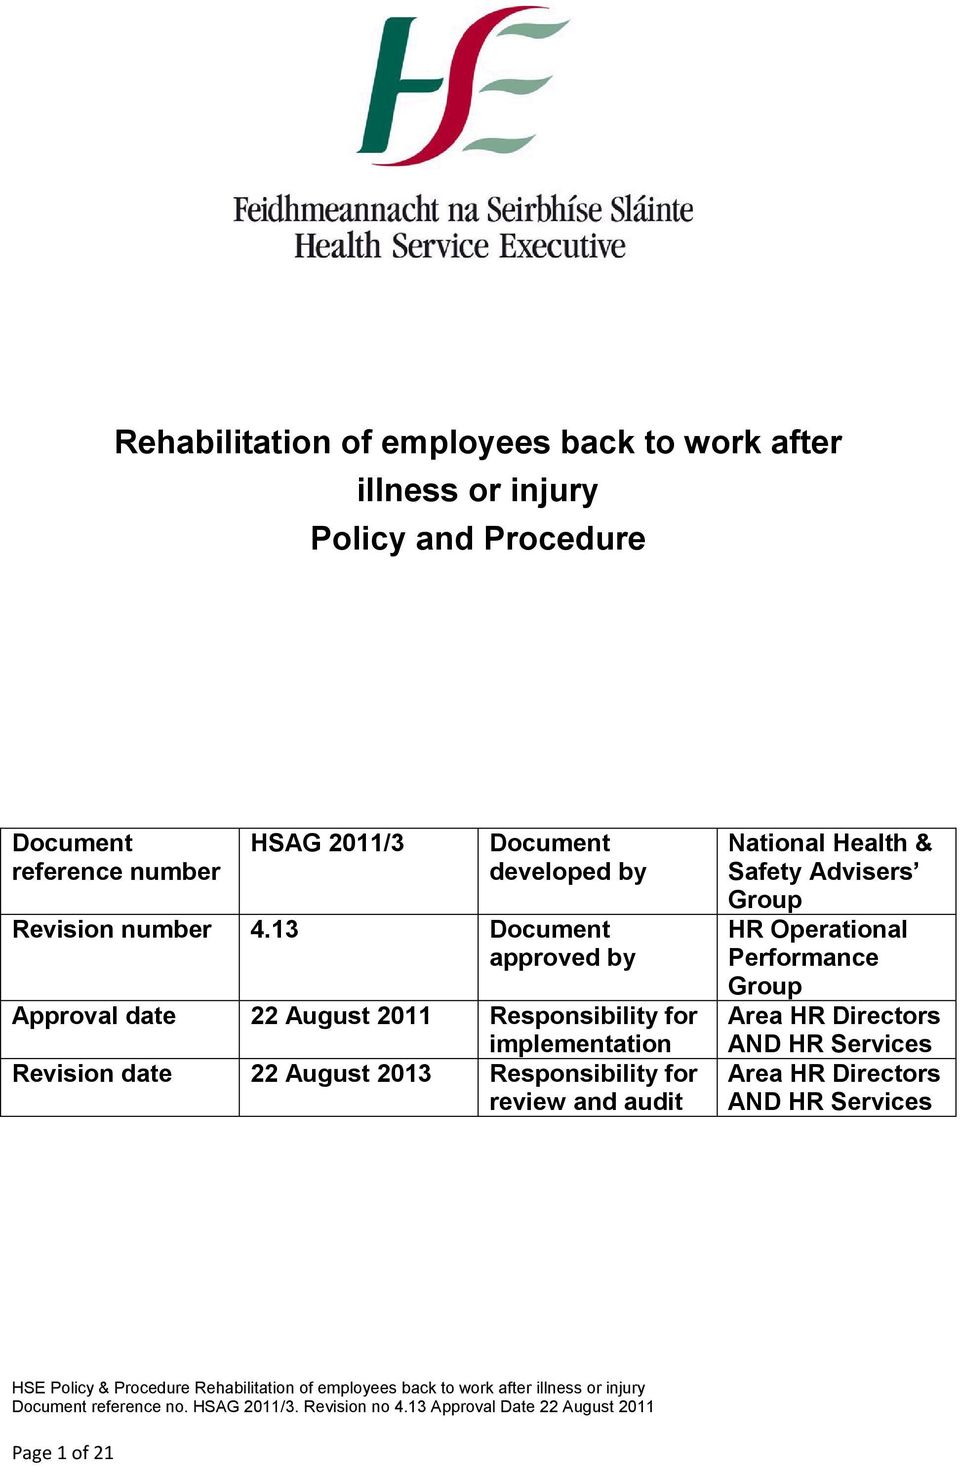 13 Document approved by Approval date 22 August 2011 Responsibility for implementation Revision date 22 August 2013